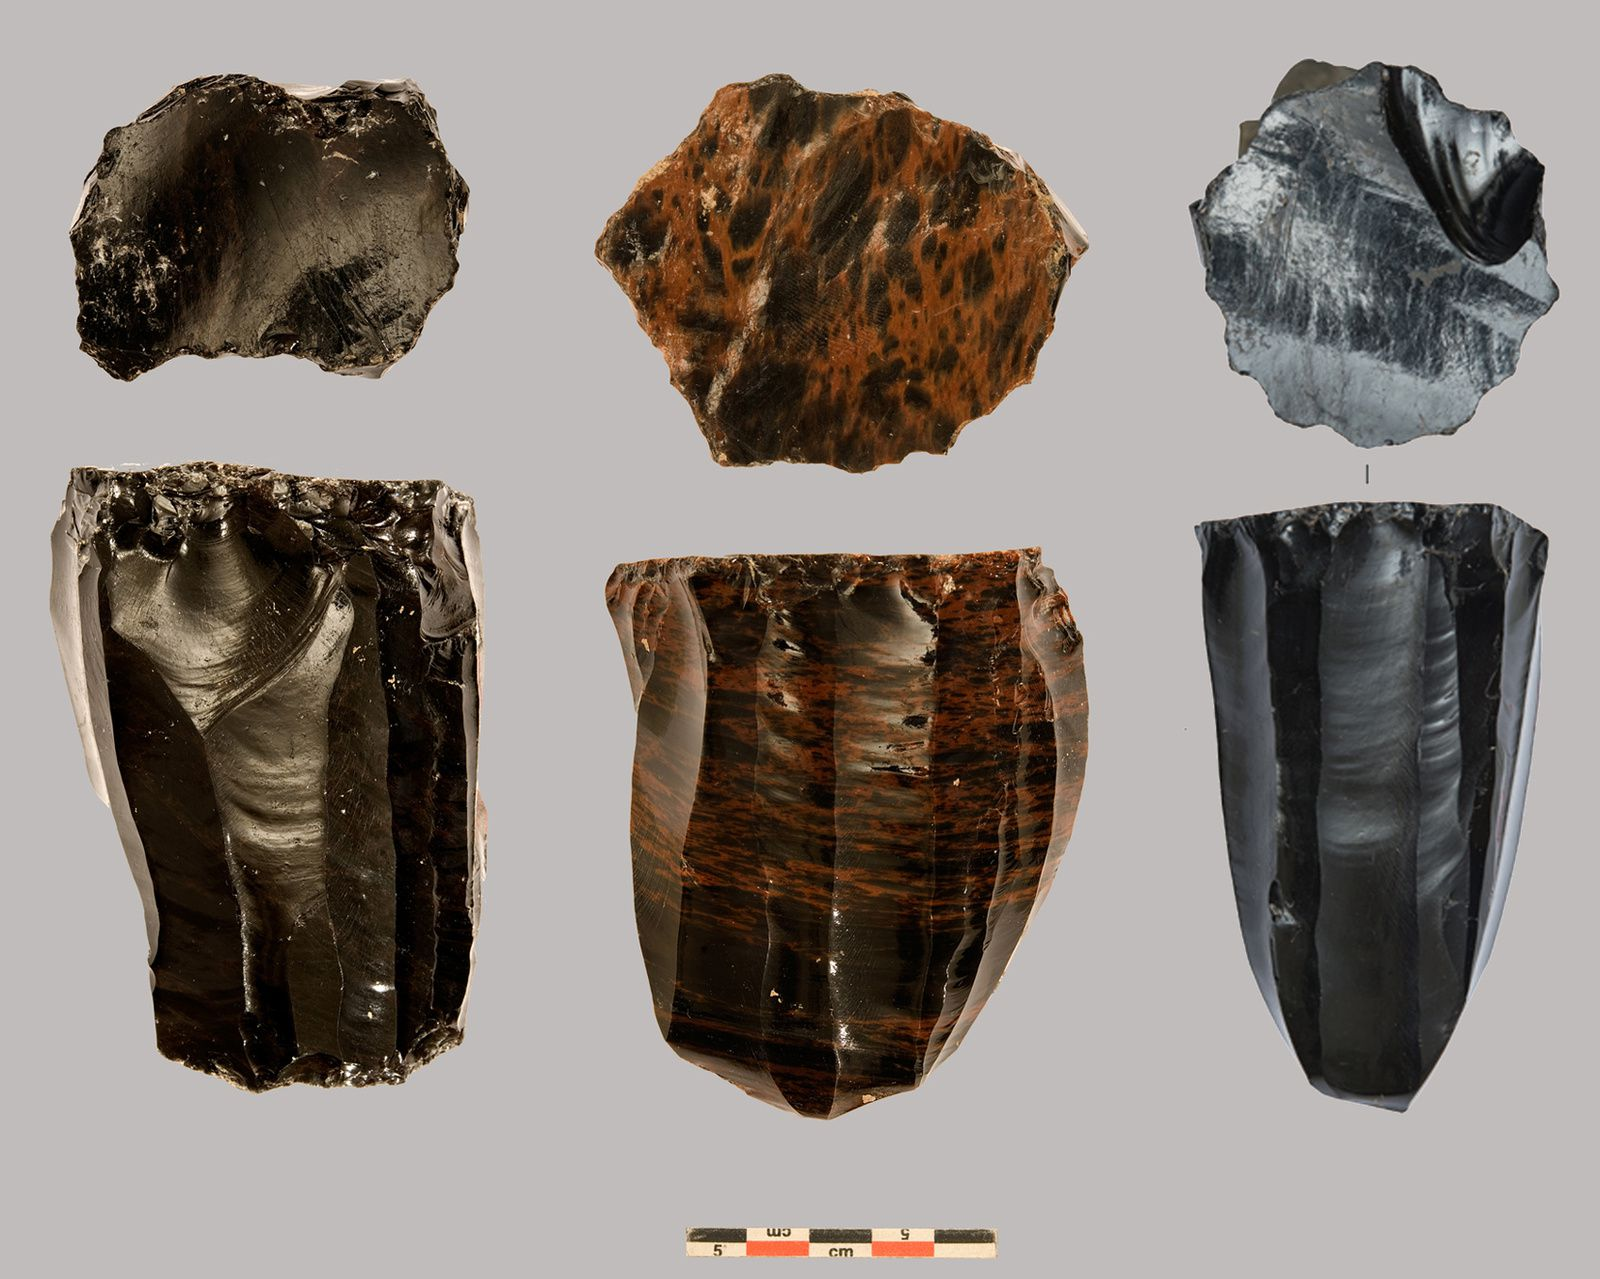 Armenia - Obsidian Nucleus from Aknashen-Khatunarkh - Doc. Ch Chataigner / references in sources